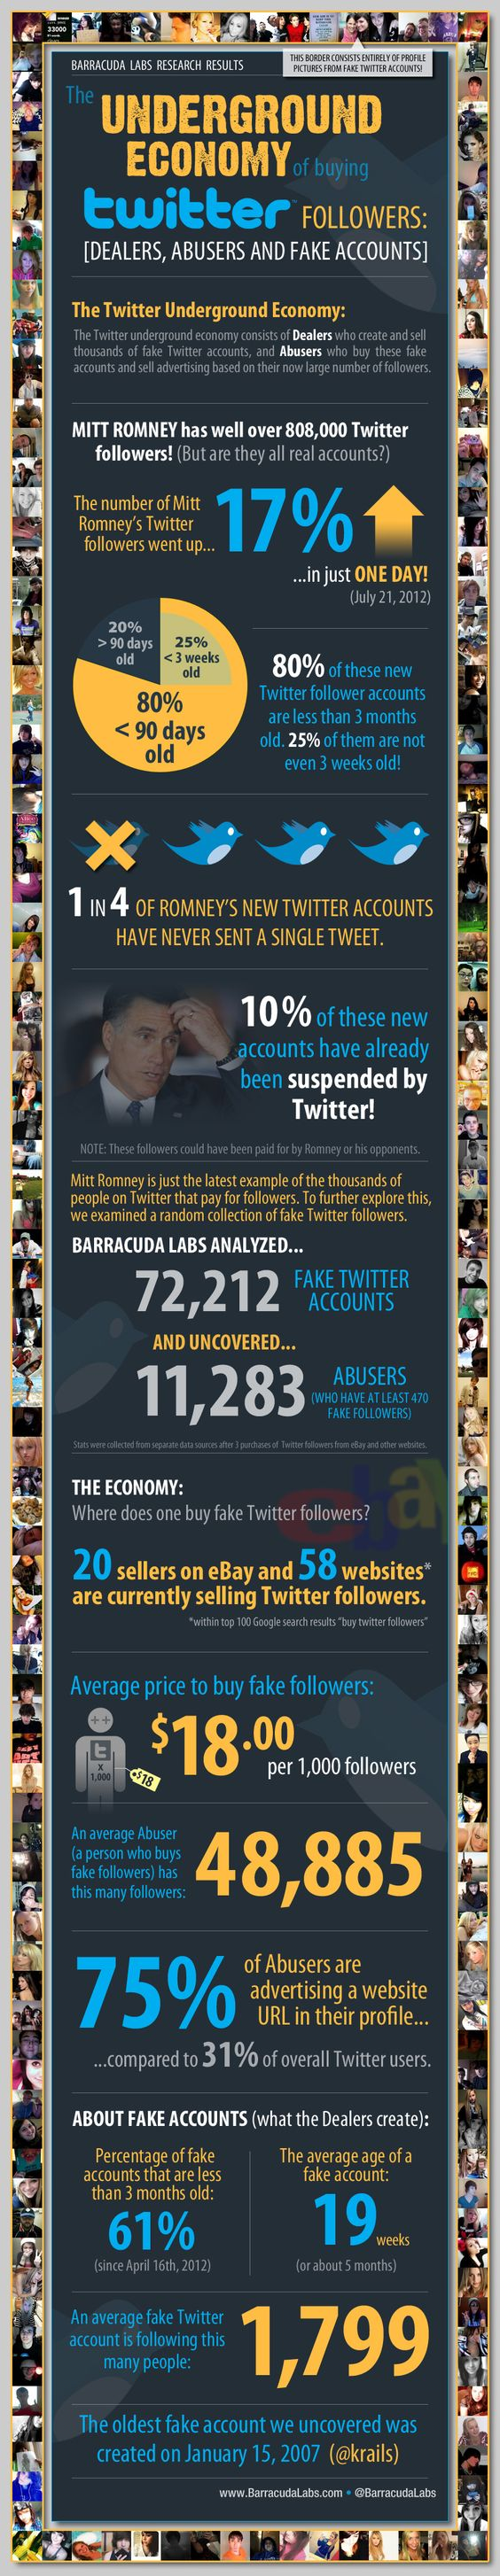 Infographic : timeline of Romney buying fake twitter followers- has bought 25%- 17% in just one day. Amazing how his campaign thinks the electorate is ignorant.